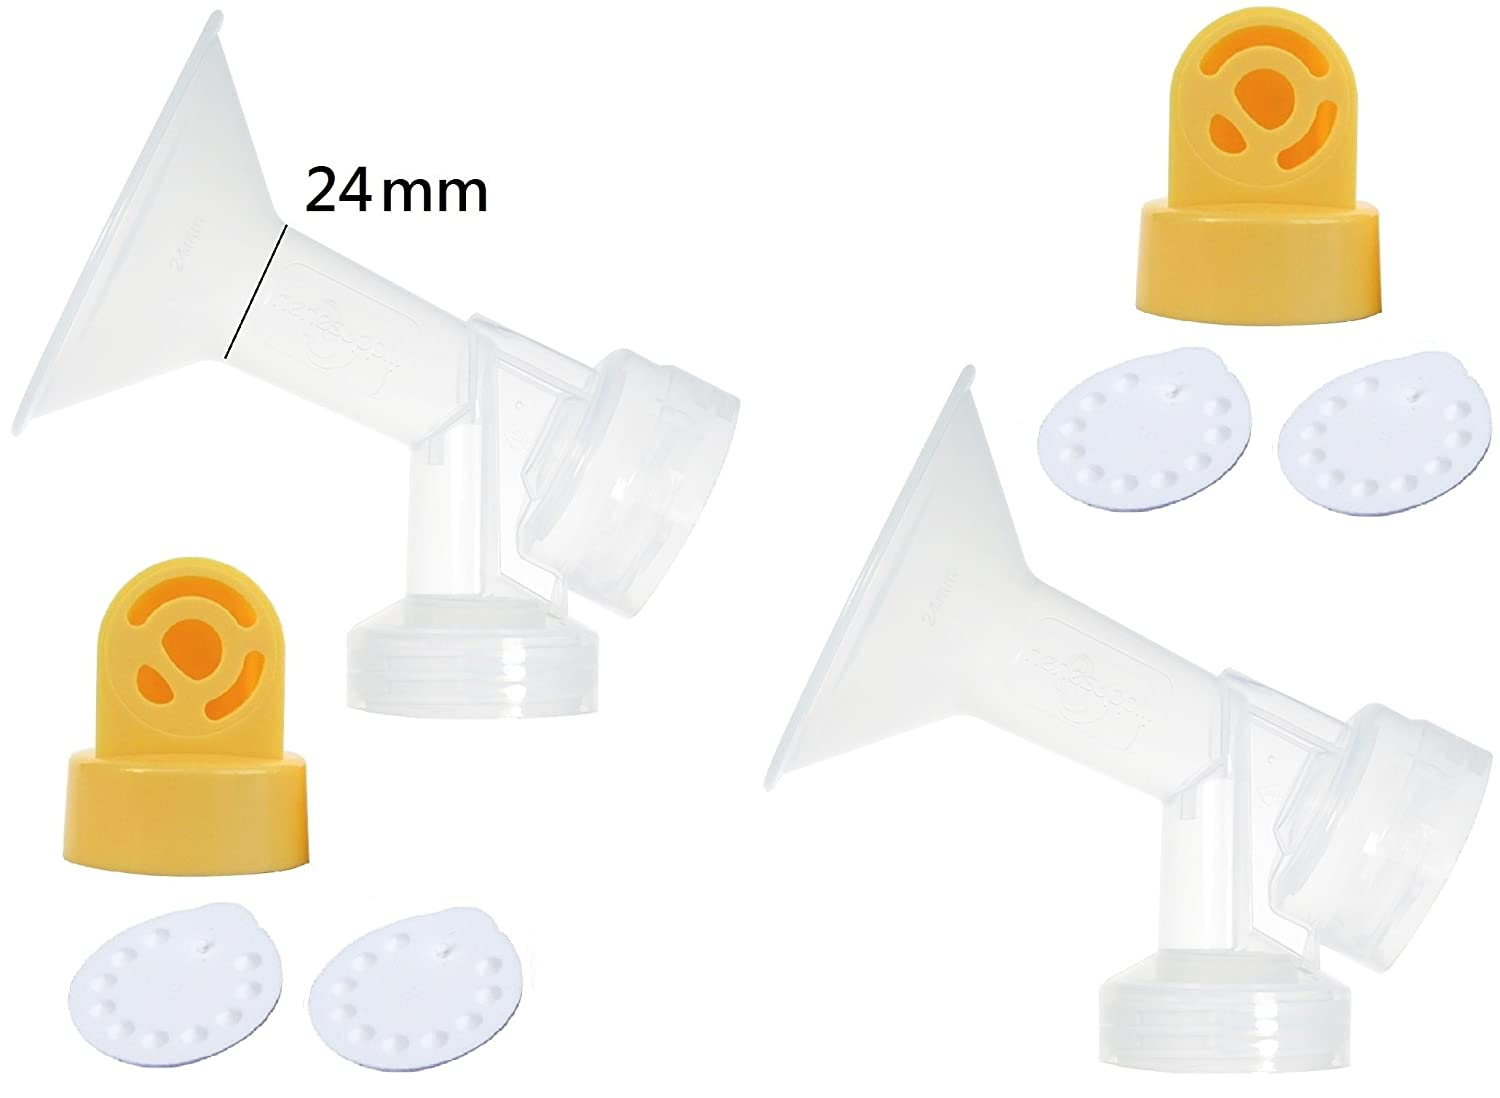 One-piece Breastshields (Replace Medela Personalfit) with 2 Valves and 4 Membranes for Medela Pump In Style, Lactina, and Symphony Breastpumps. Replace Medela Personal Fit Connector and Breastshield. Medela Valve, and Medela Membrane. (Breastshield 24mm) N